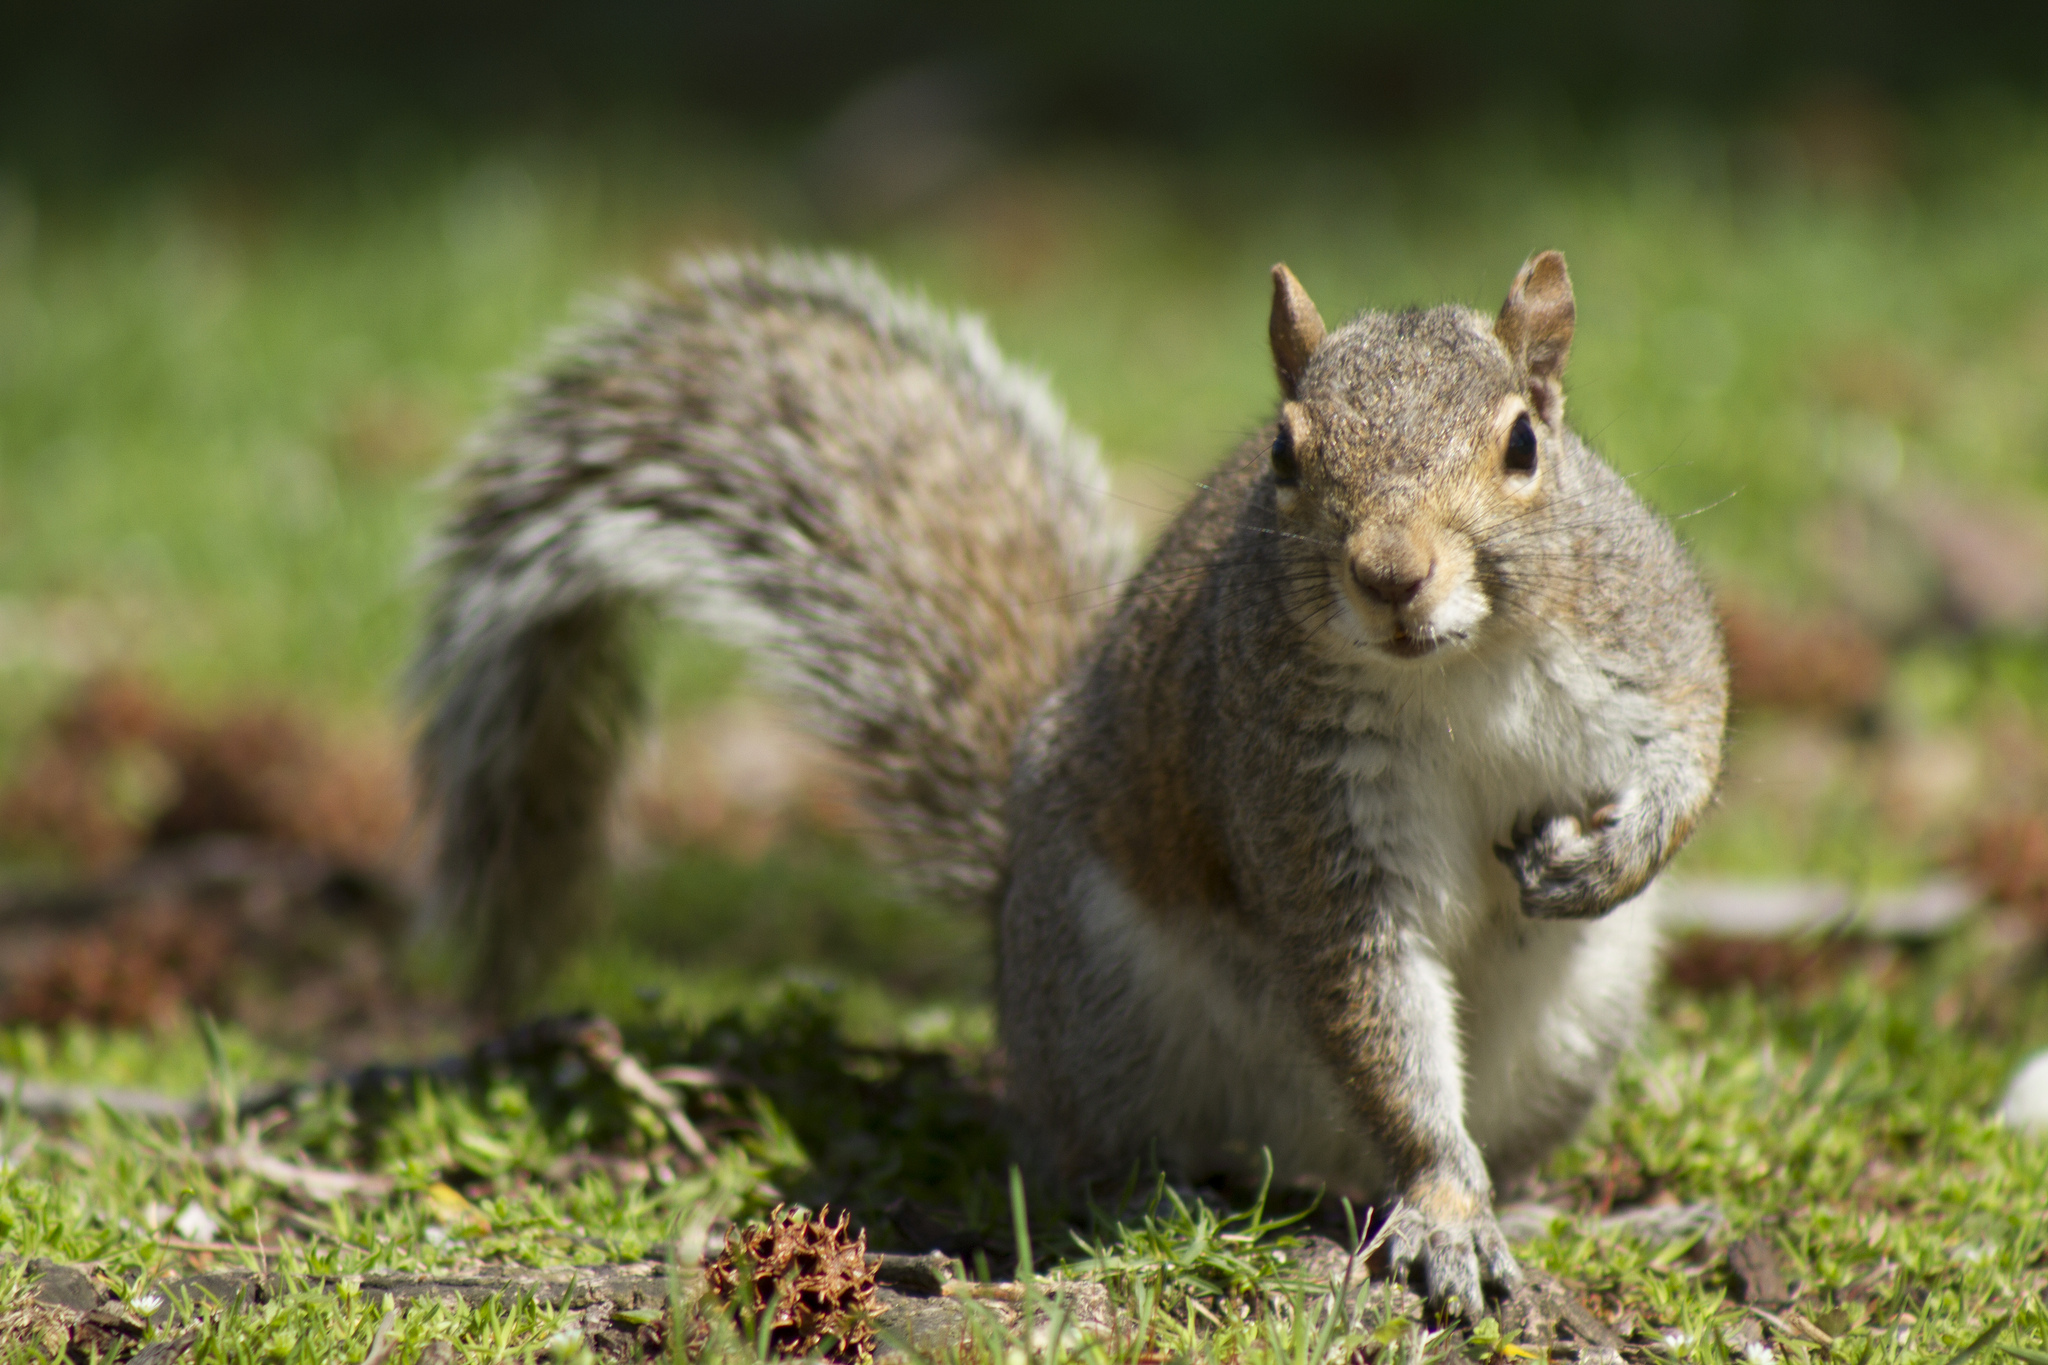 squirrel wallpaper - photo #36